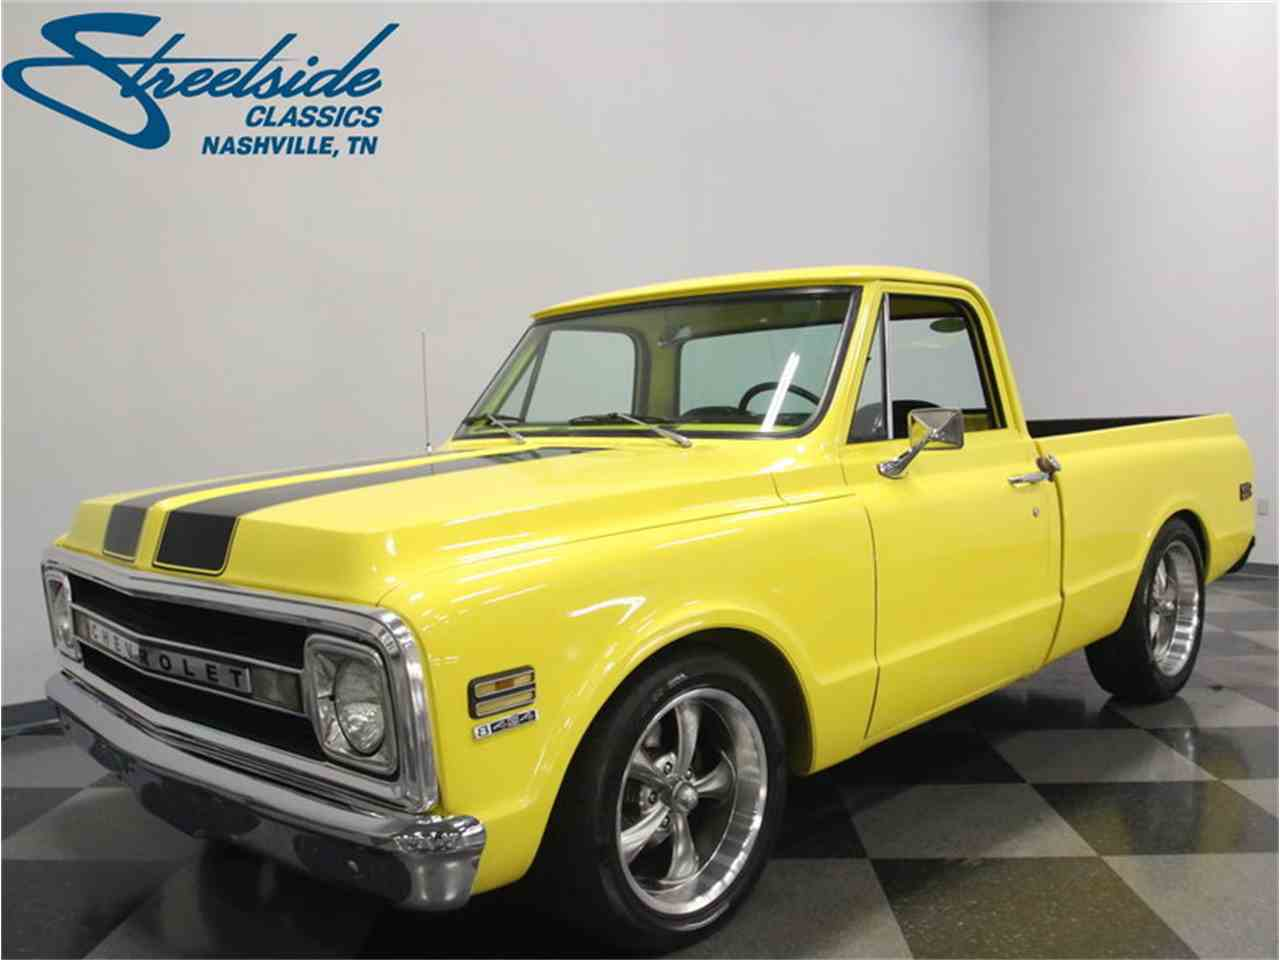 All Chevy 1969 chevrolet c10 for sale : 1969 Chevrolet C10 for Sale | ClassicCars.com | CC-1034050